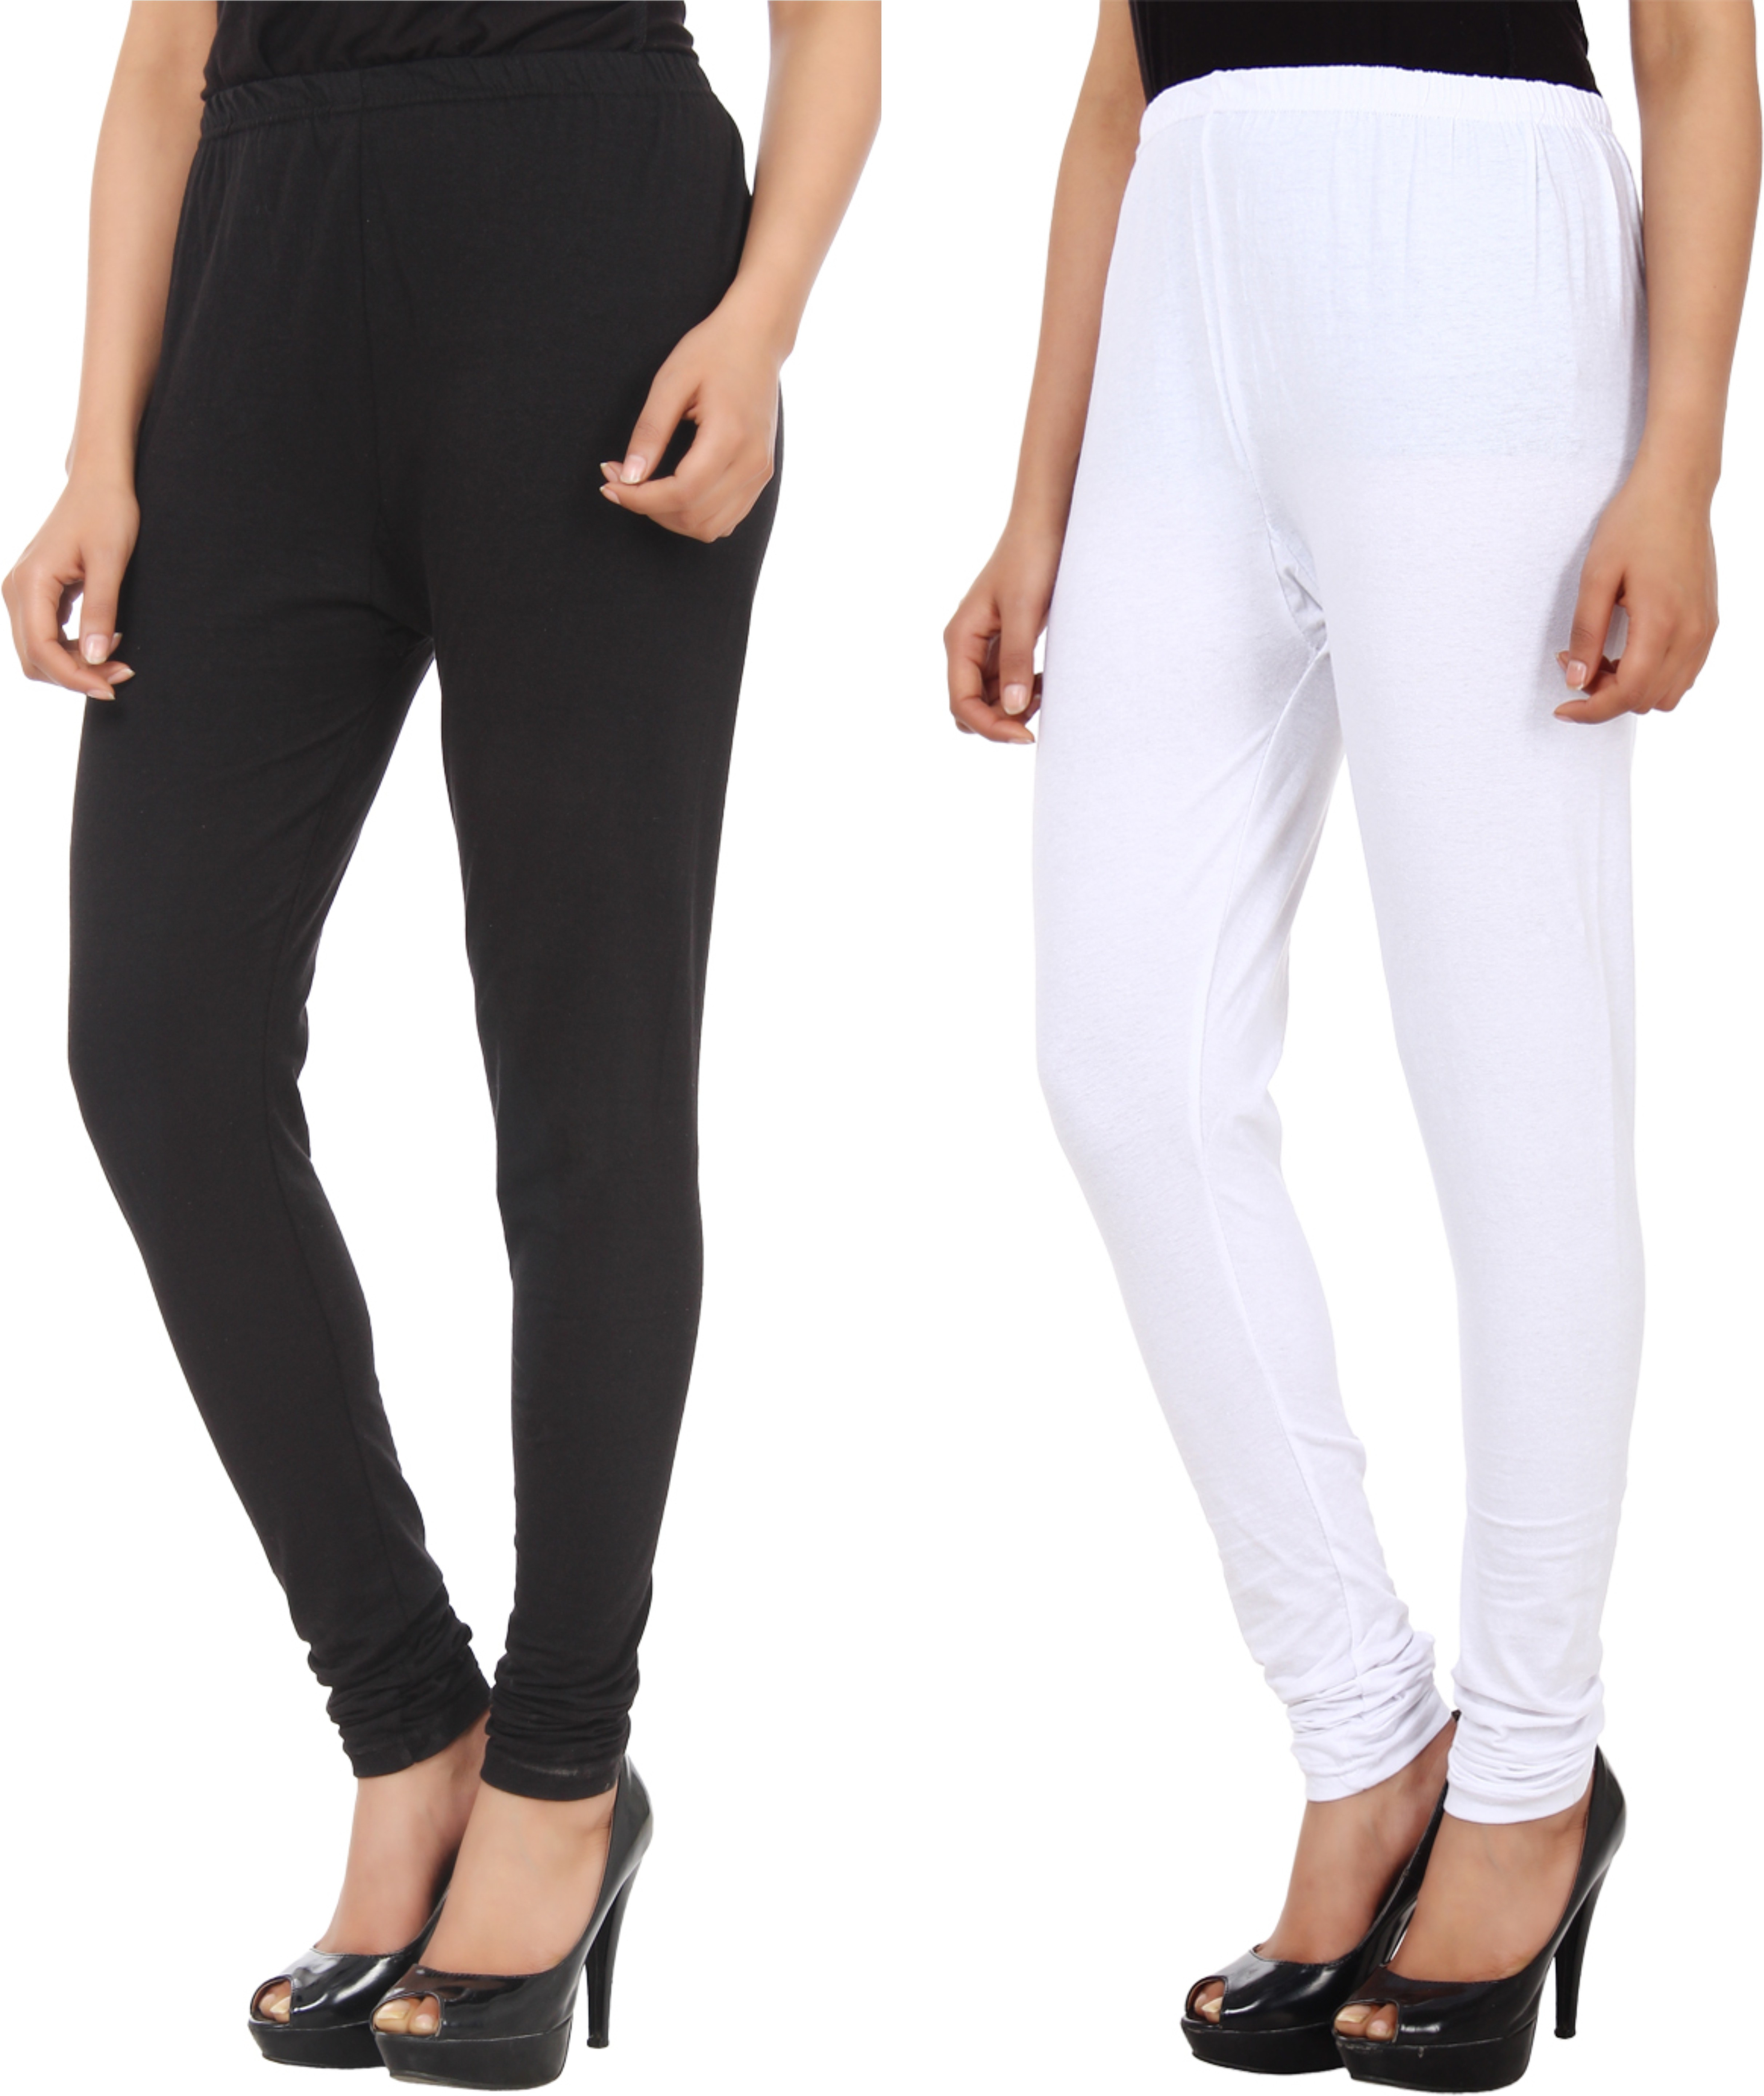 Xpos� Womens Black, White Leggings(Pack of 2)